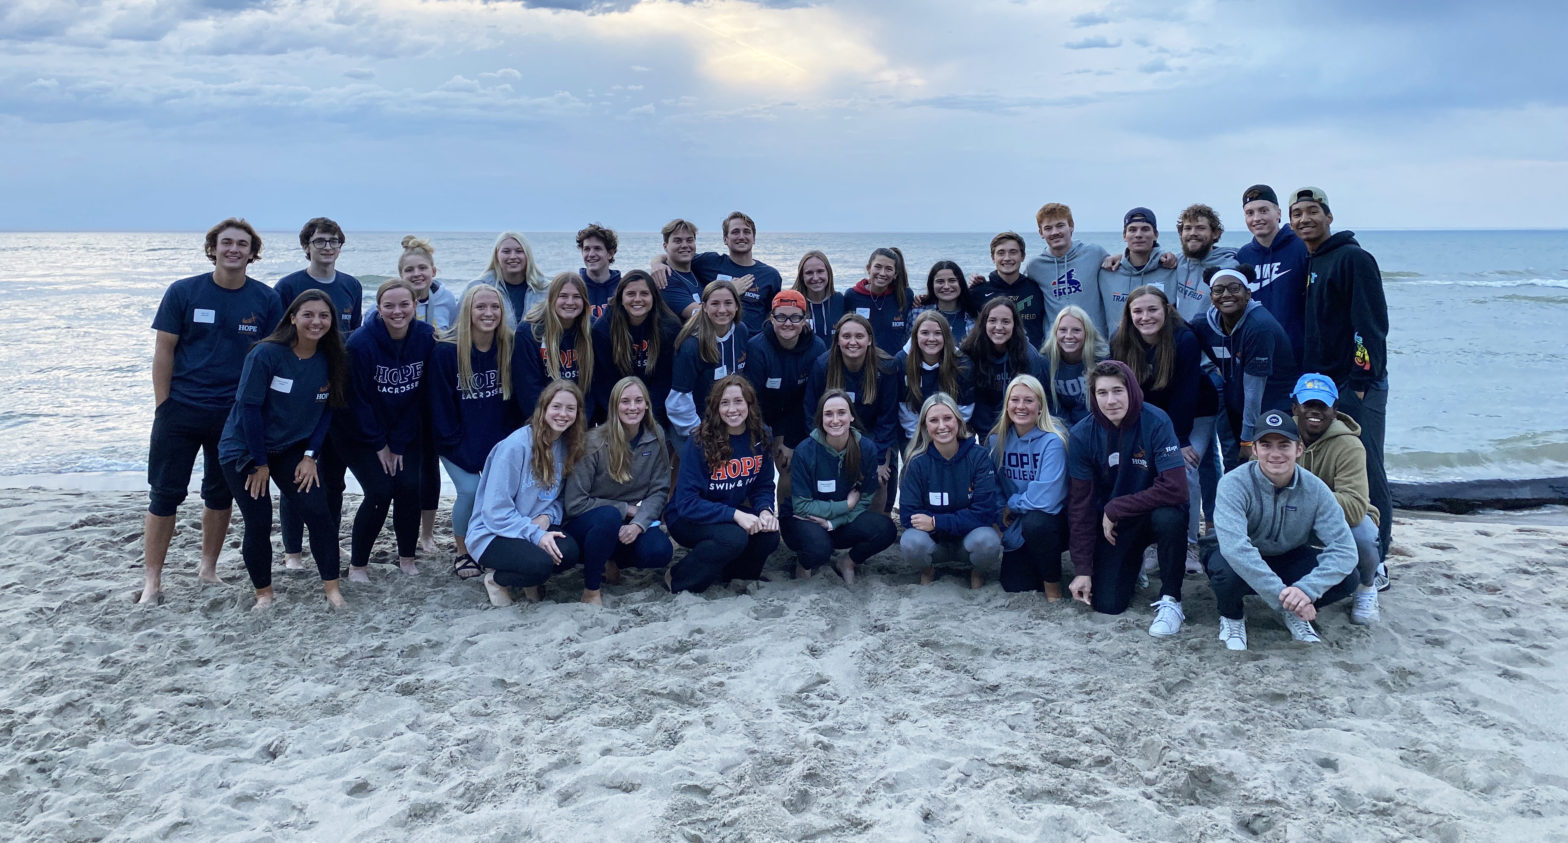 40 Hope student-athletes poses for a group photo on the shores of Lake Michigan.